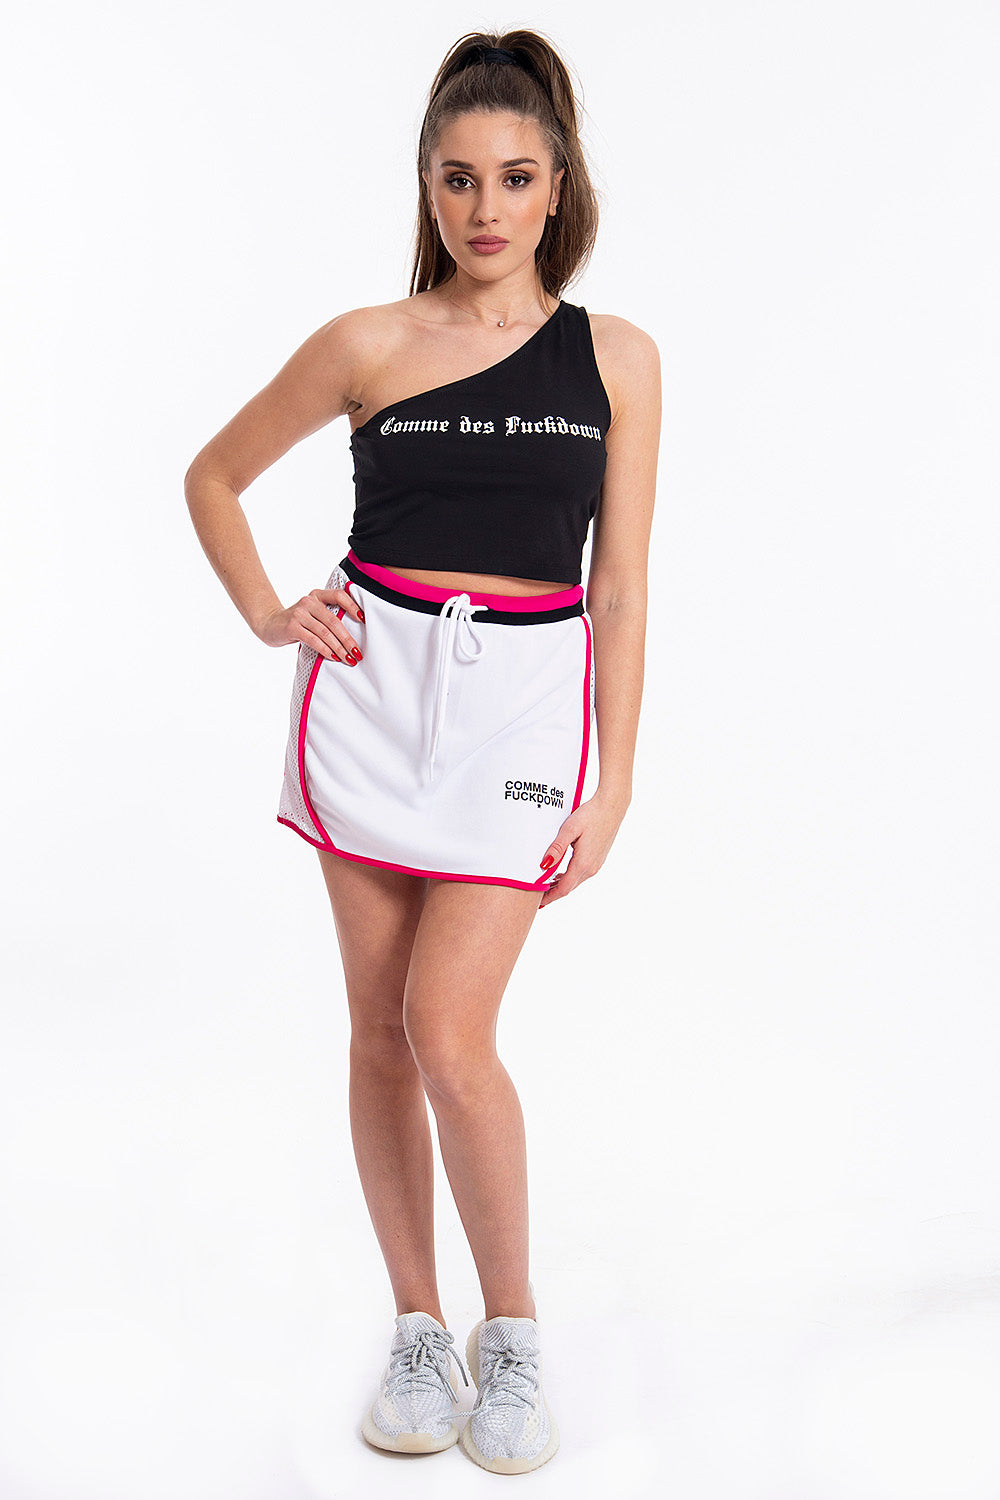 Comme des Fuckdown sports skirt with side net